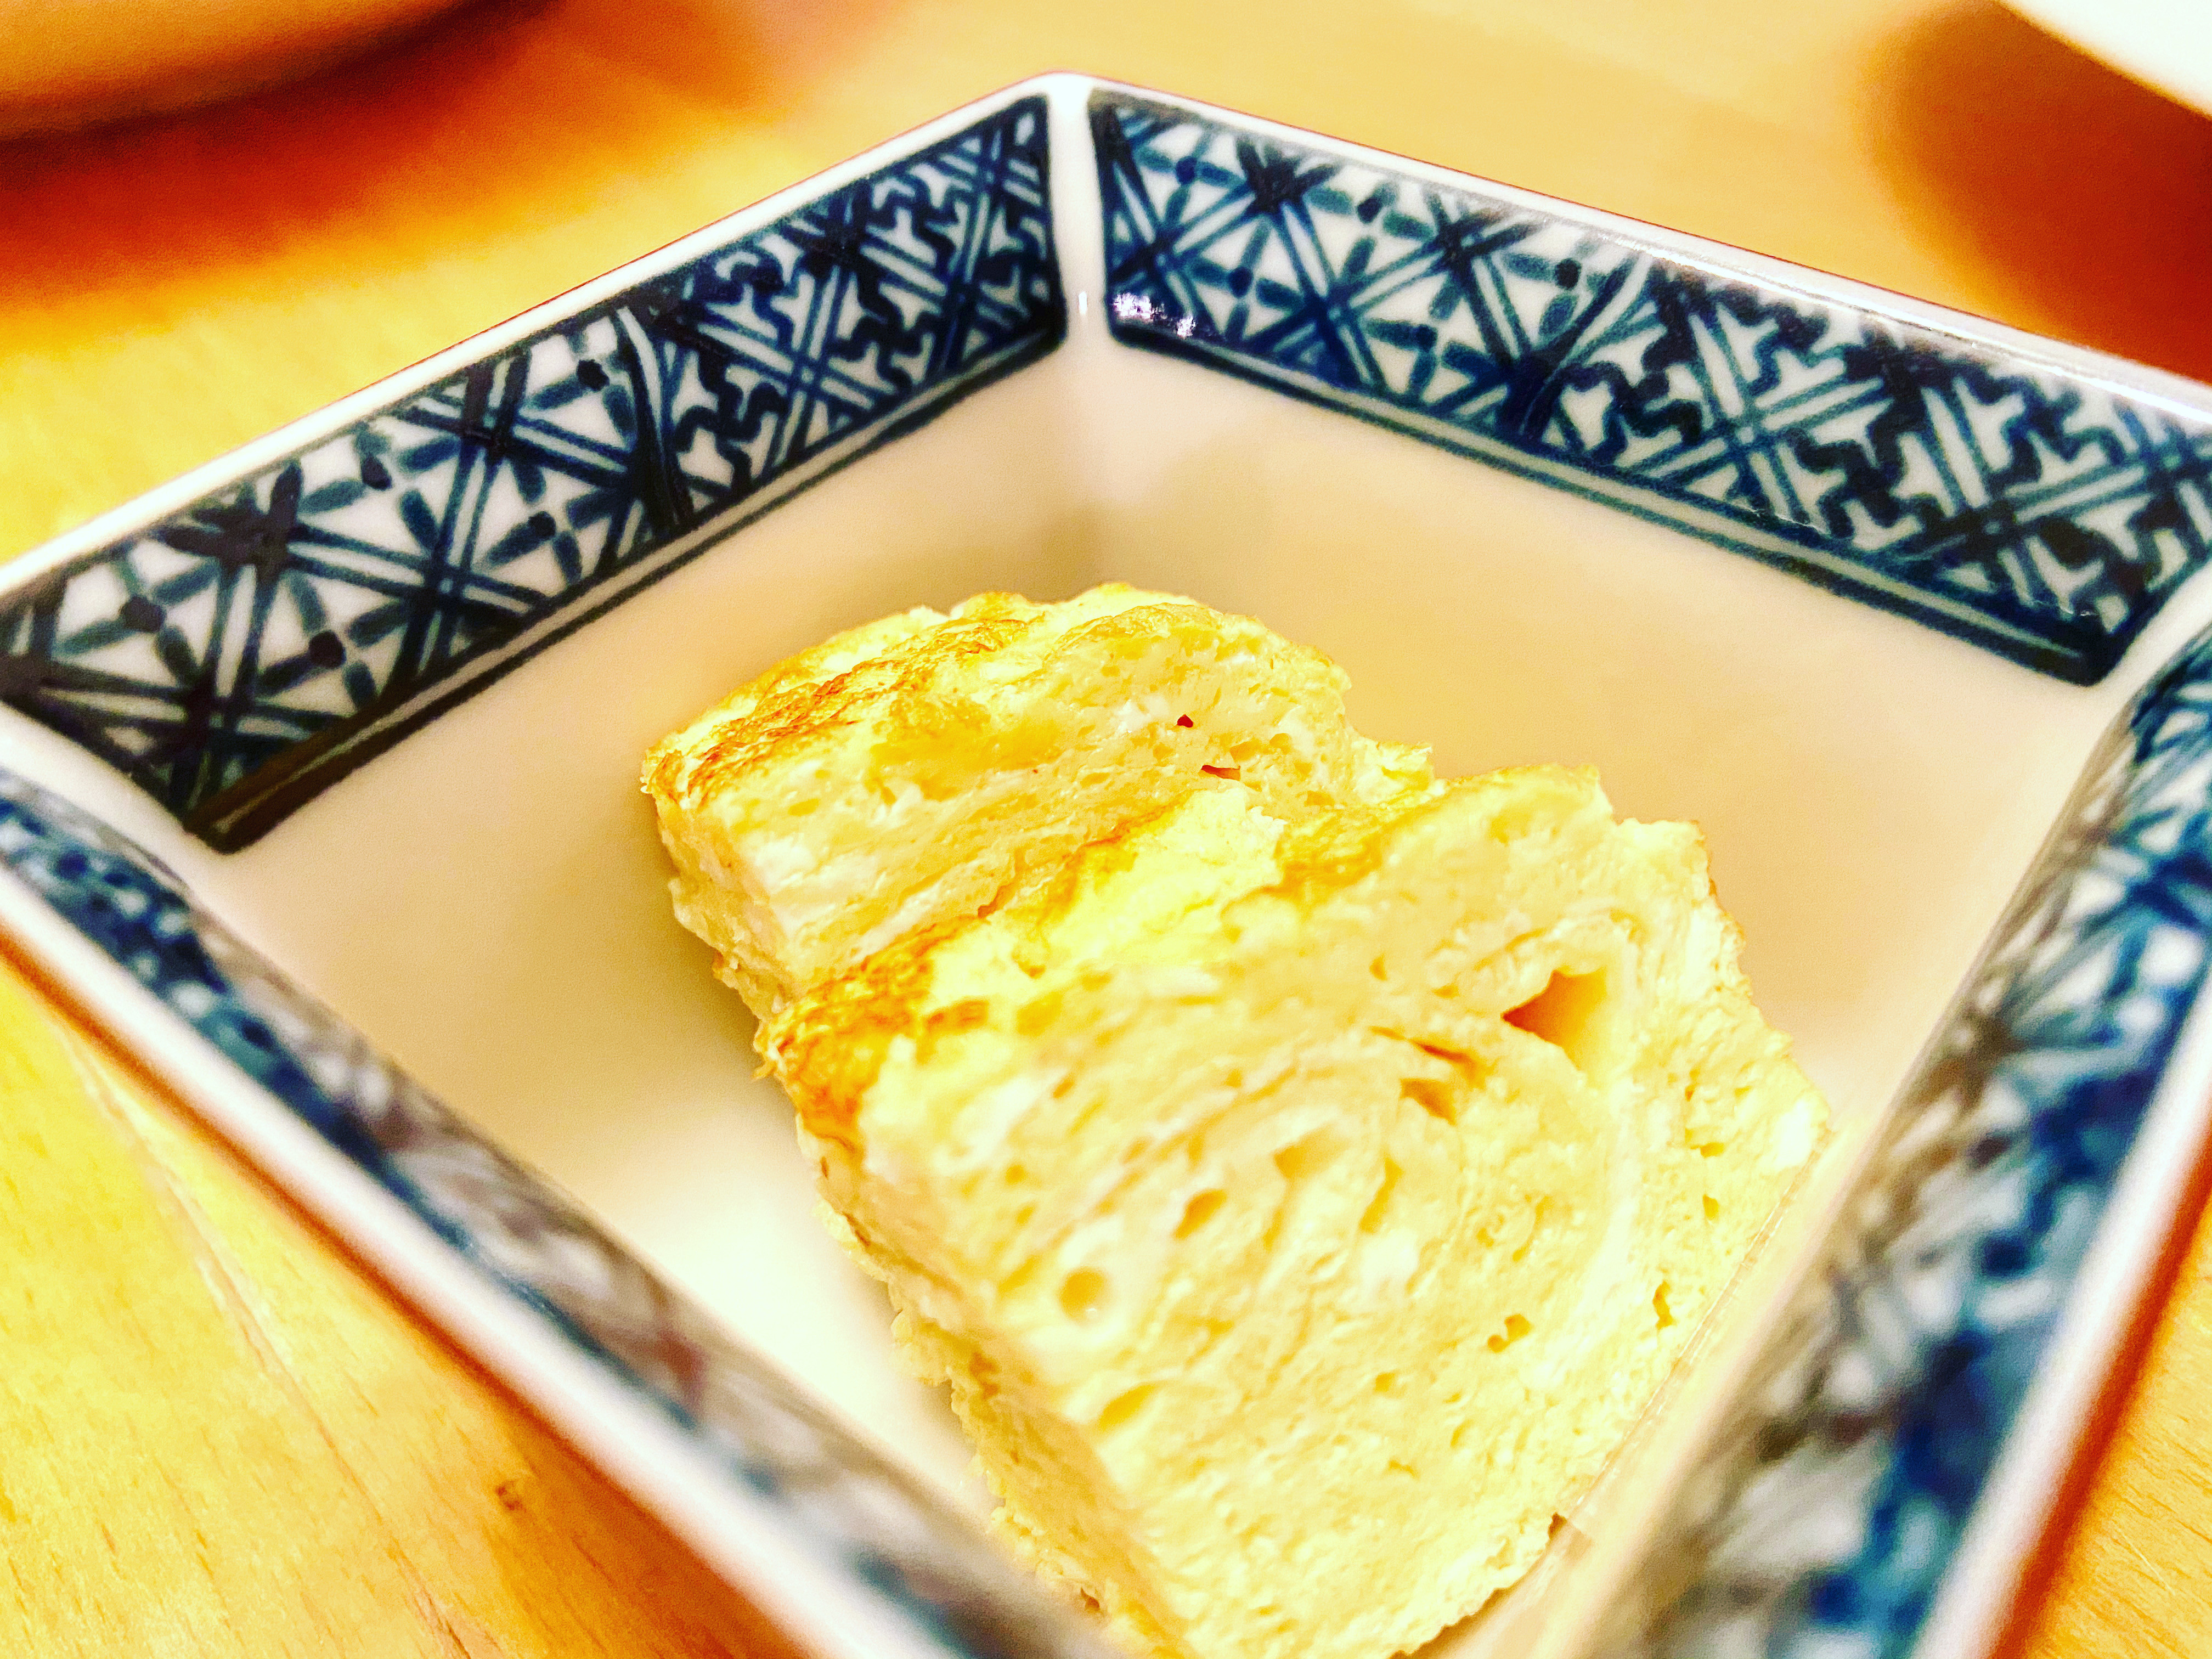 COOKING LESSON! 1. ROLLED OMELET